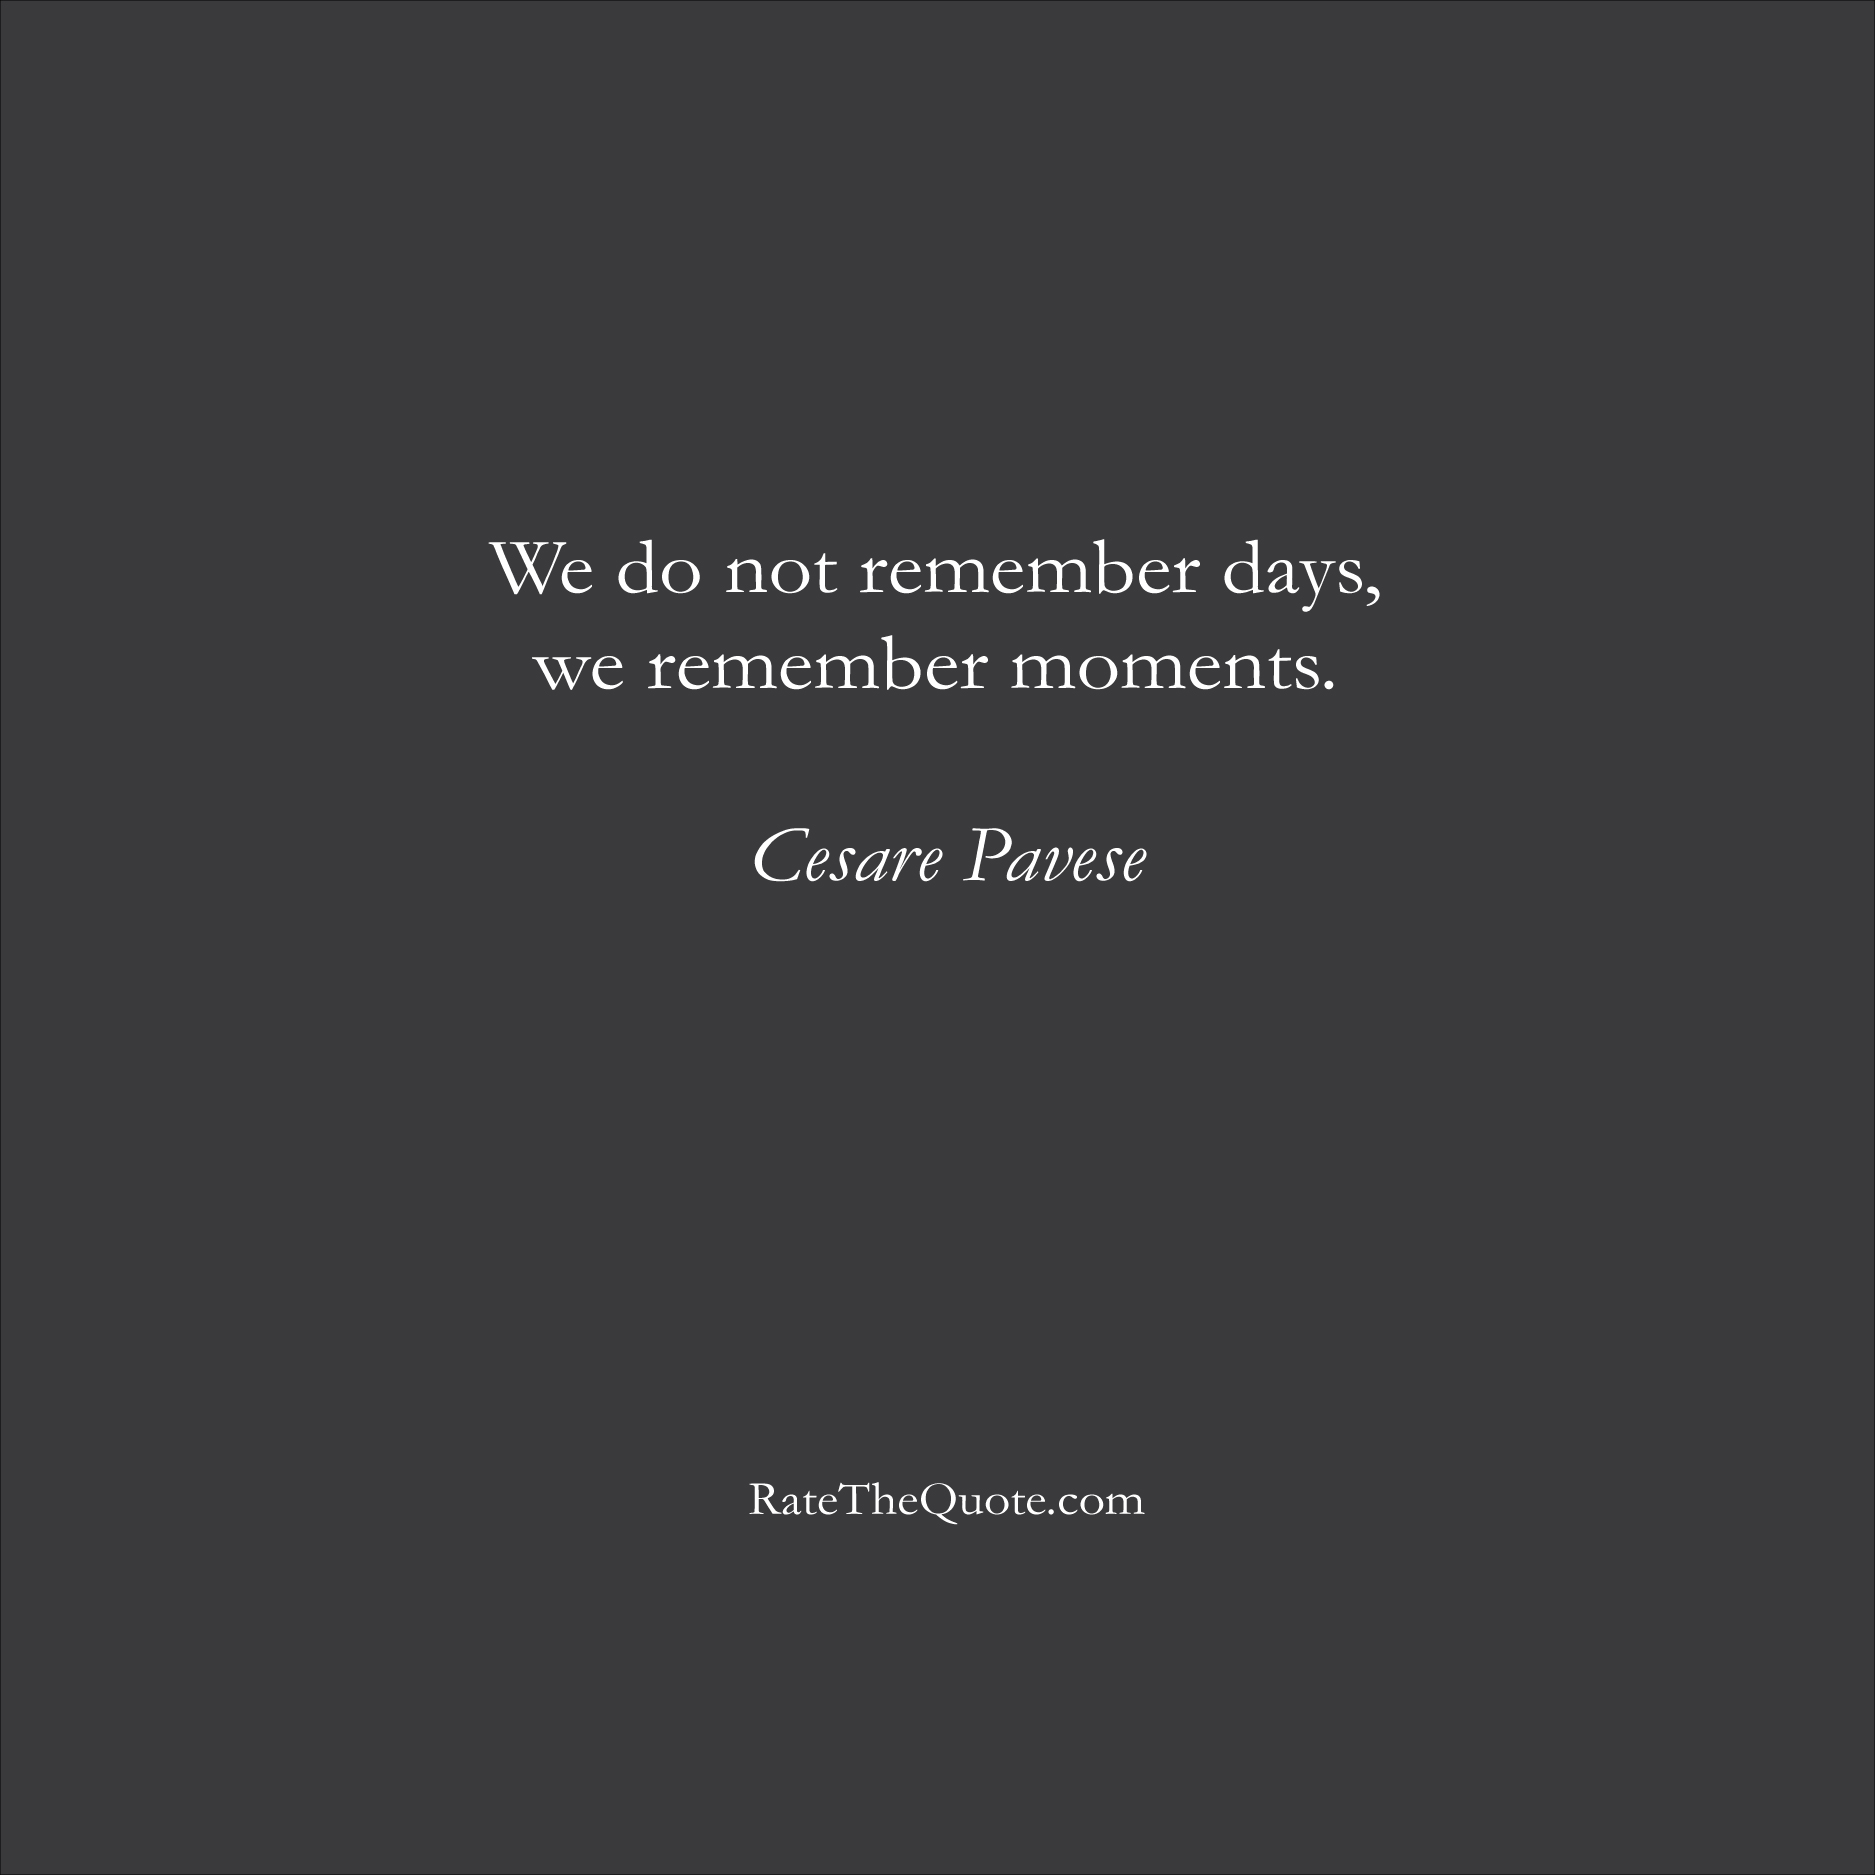 Life Quotes We do not remember days, we remember moments. Cesare Pavese